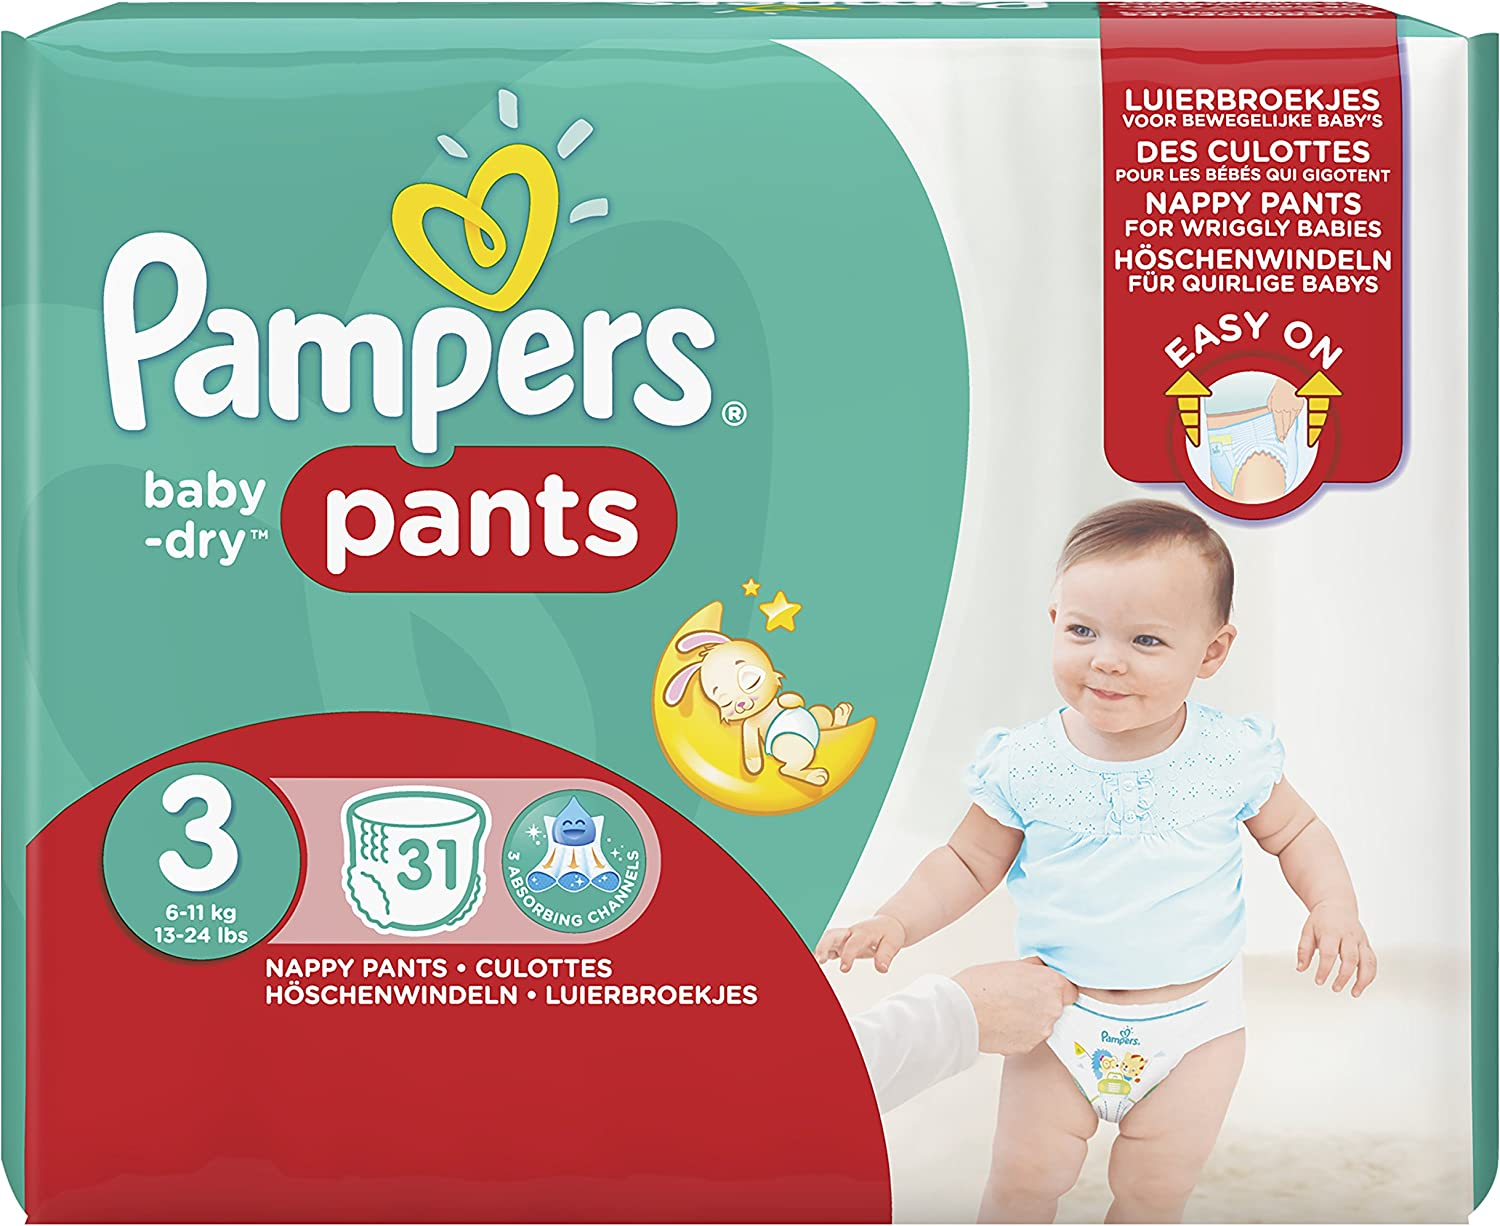 Pampers Baby Dry Pants Nappies Size 3/Midi 6/and 11kg Value Pack 31/Diapers